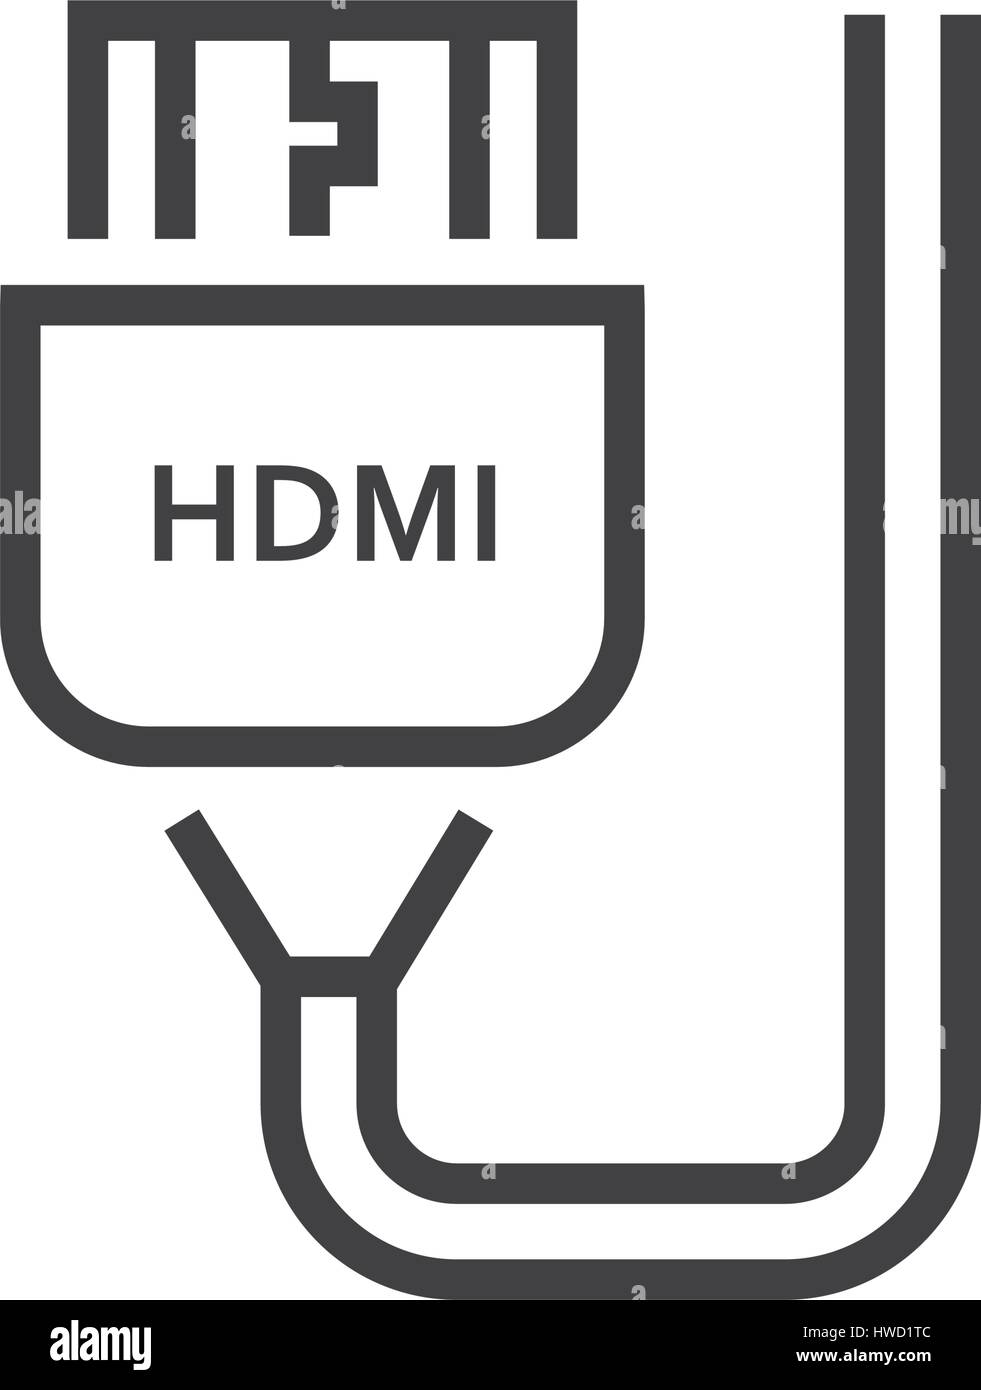 hdmi adapter line icon stock vector image art alamy https www alamy com stock photo hdmi adapter line icon 136125820 html